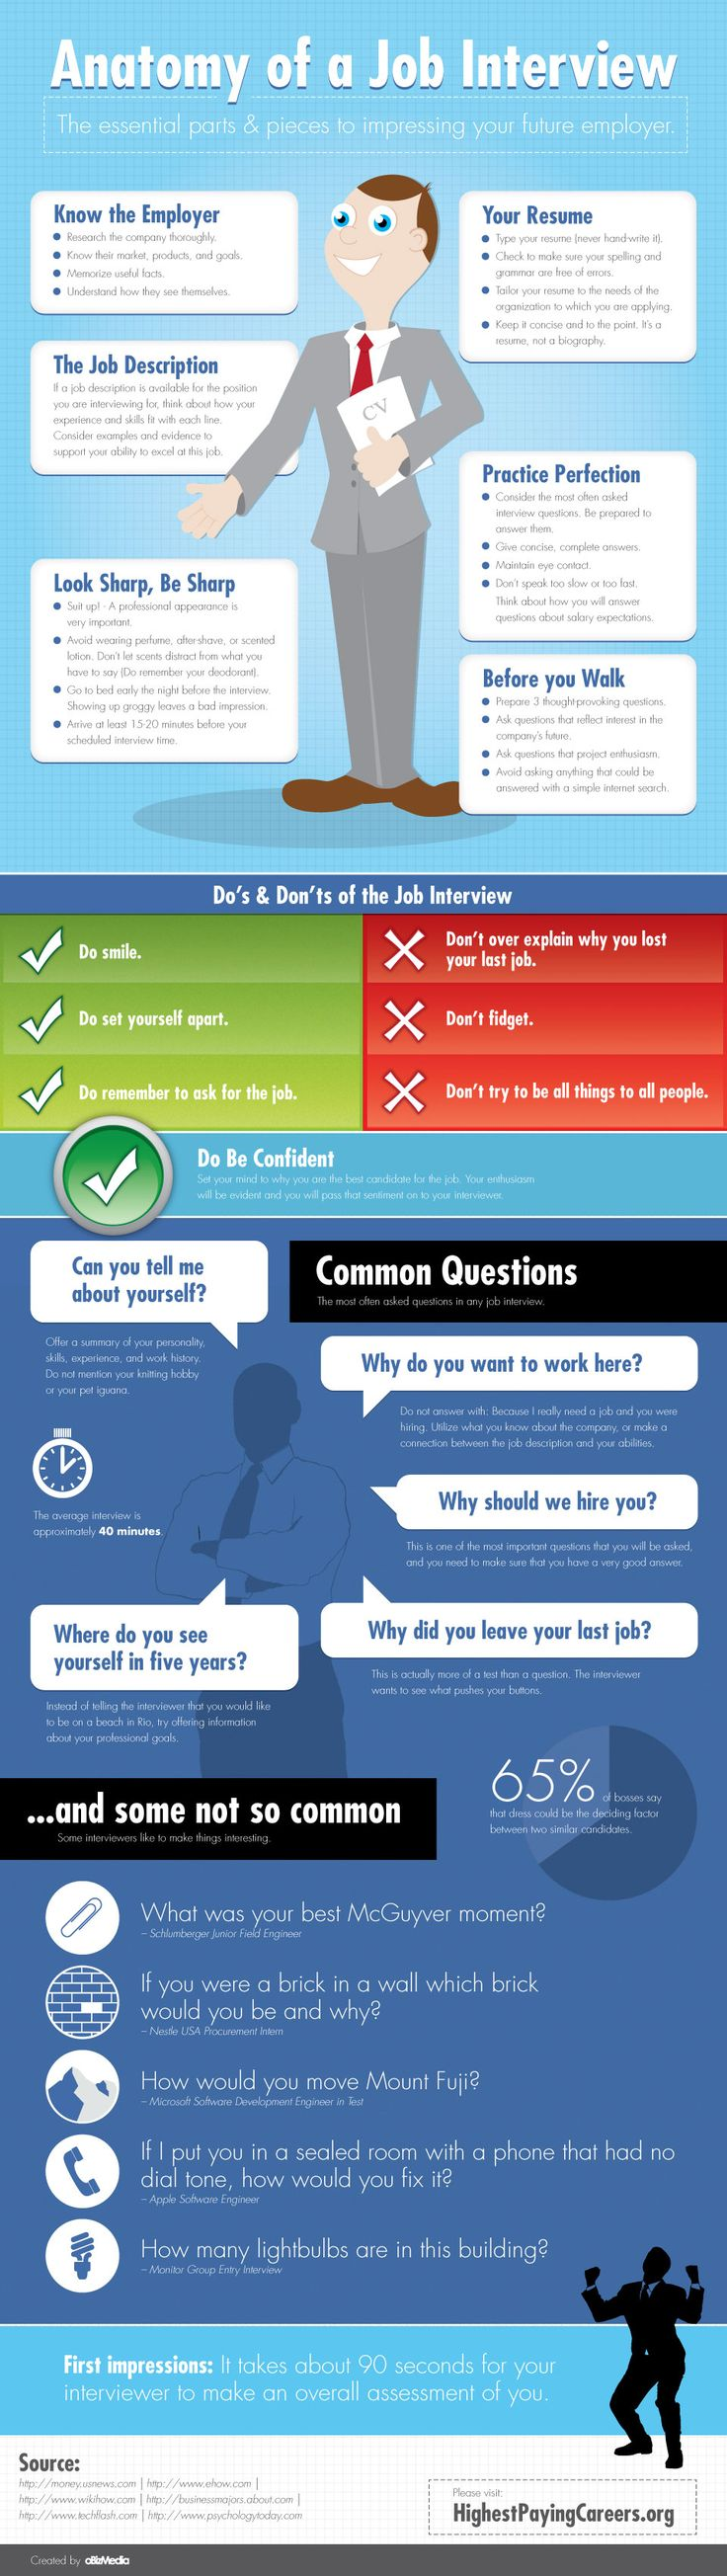 Anatomy Of A Job Interview: The Essential Parts U0026 Pieces To Impressing Your  Future Imployer · Job Interview TipsJob InterviewsSocial ...